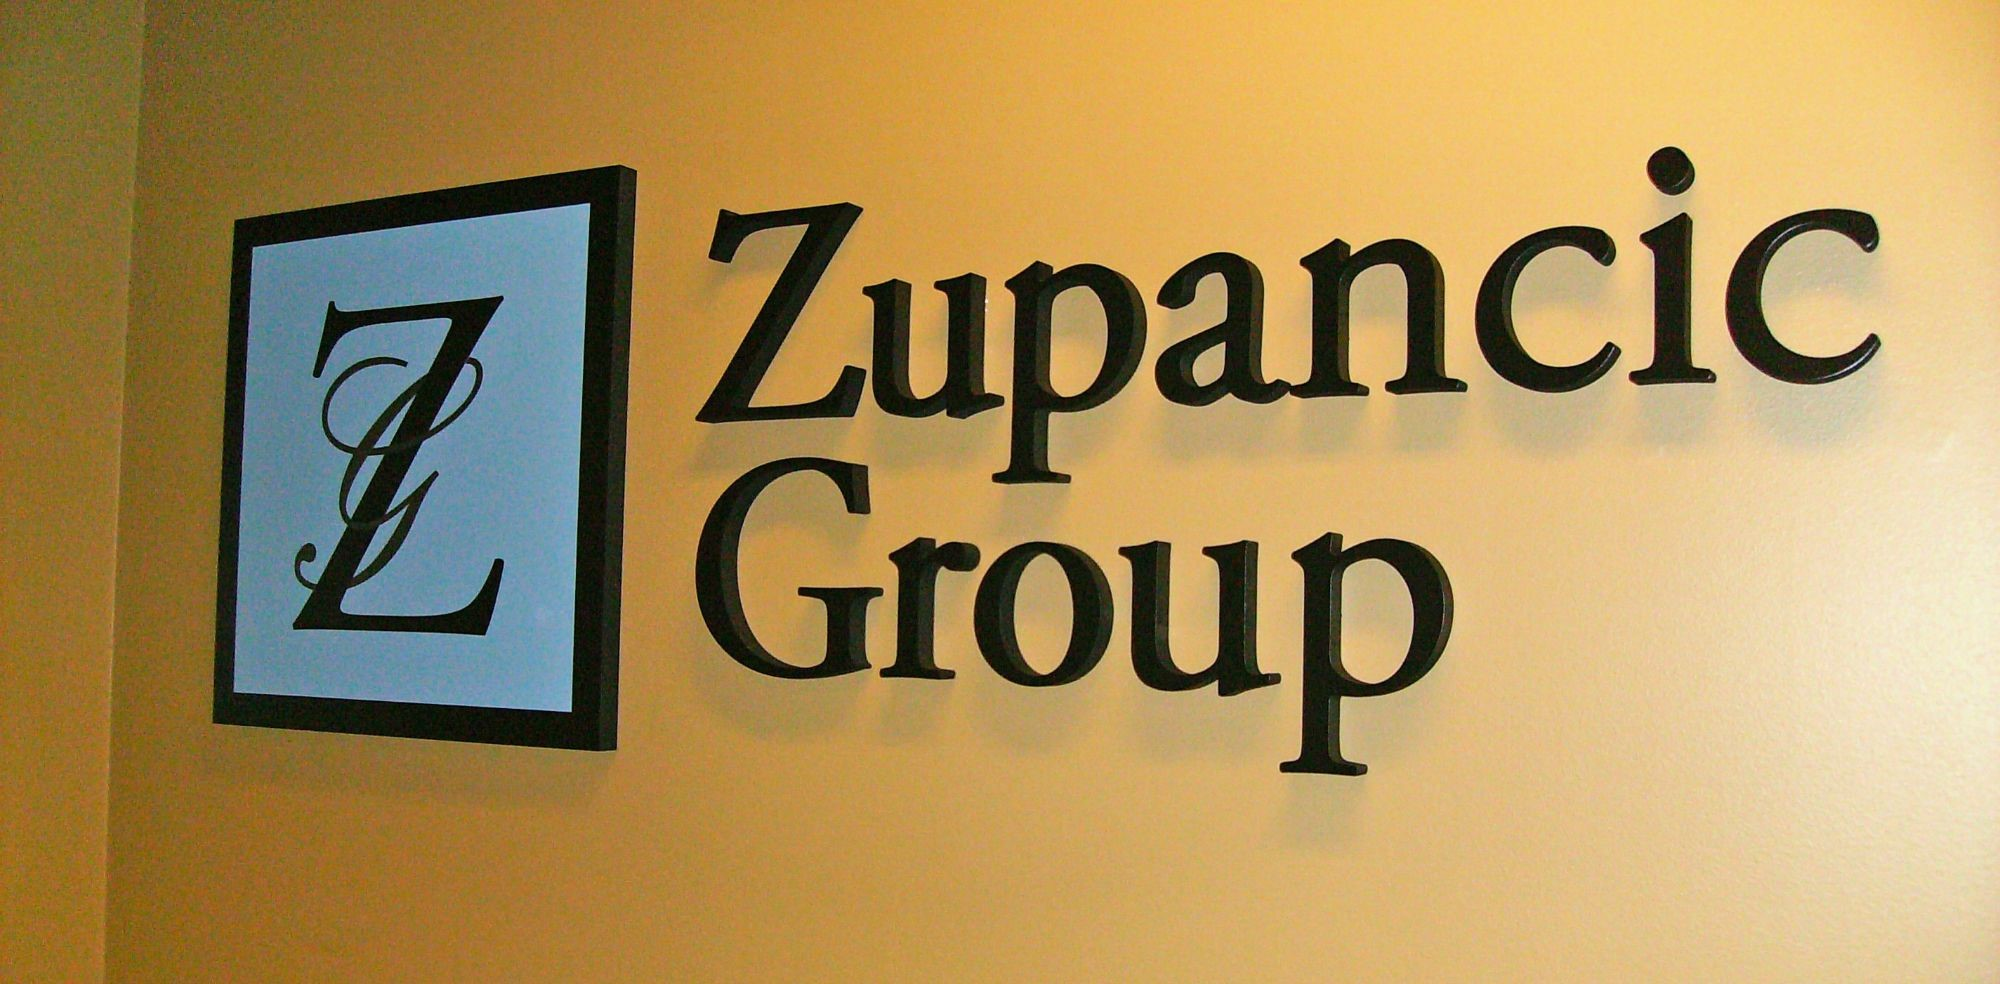 Zupancic Group Dimensional Logo Sign